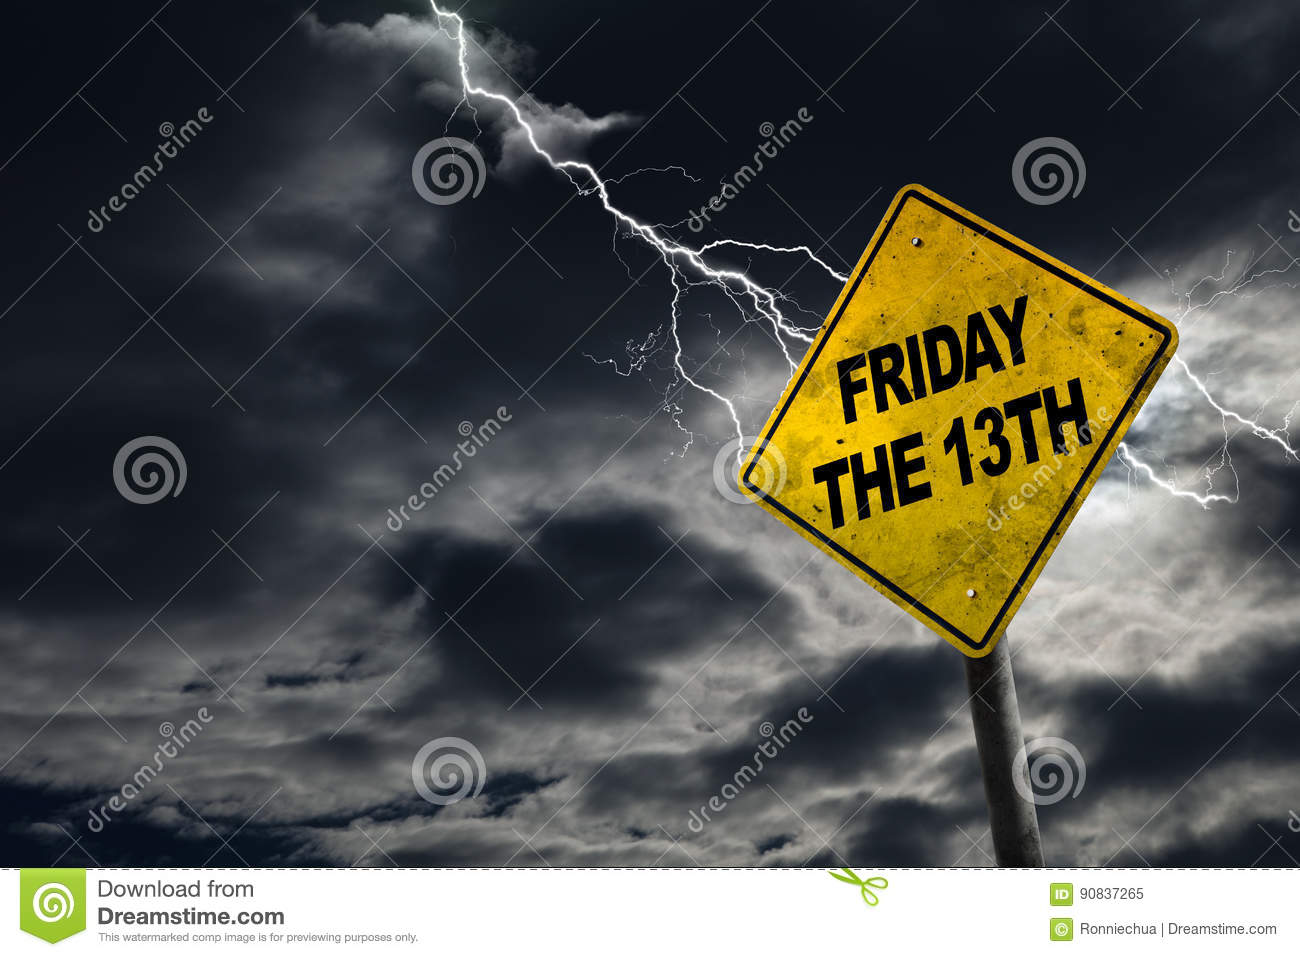 Friday The 13th Sign With Stormy Background Stock Image Image Of